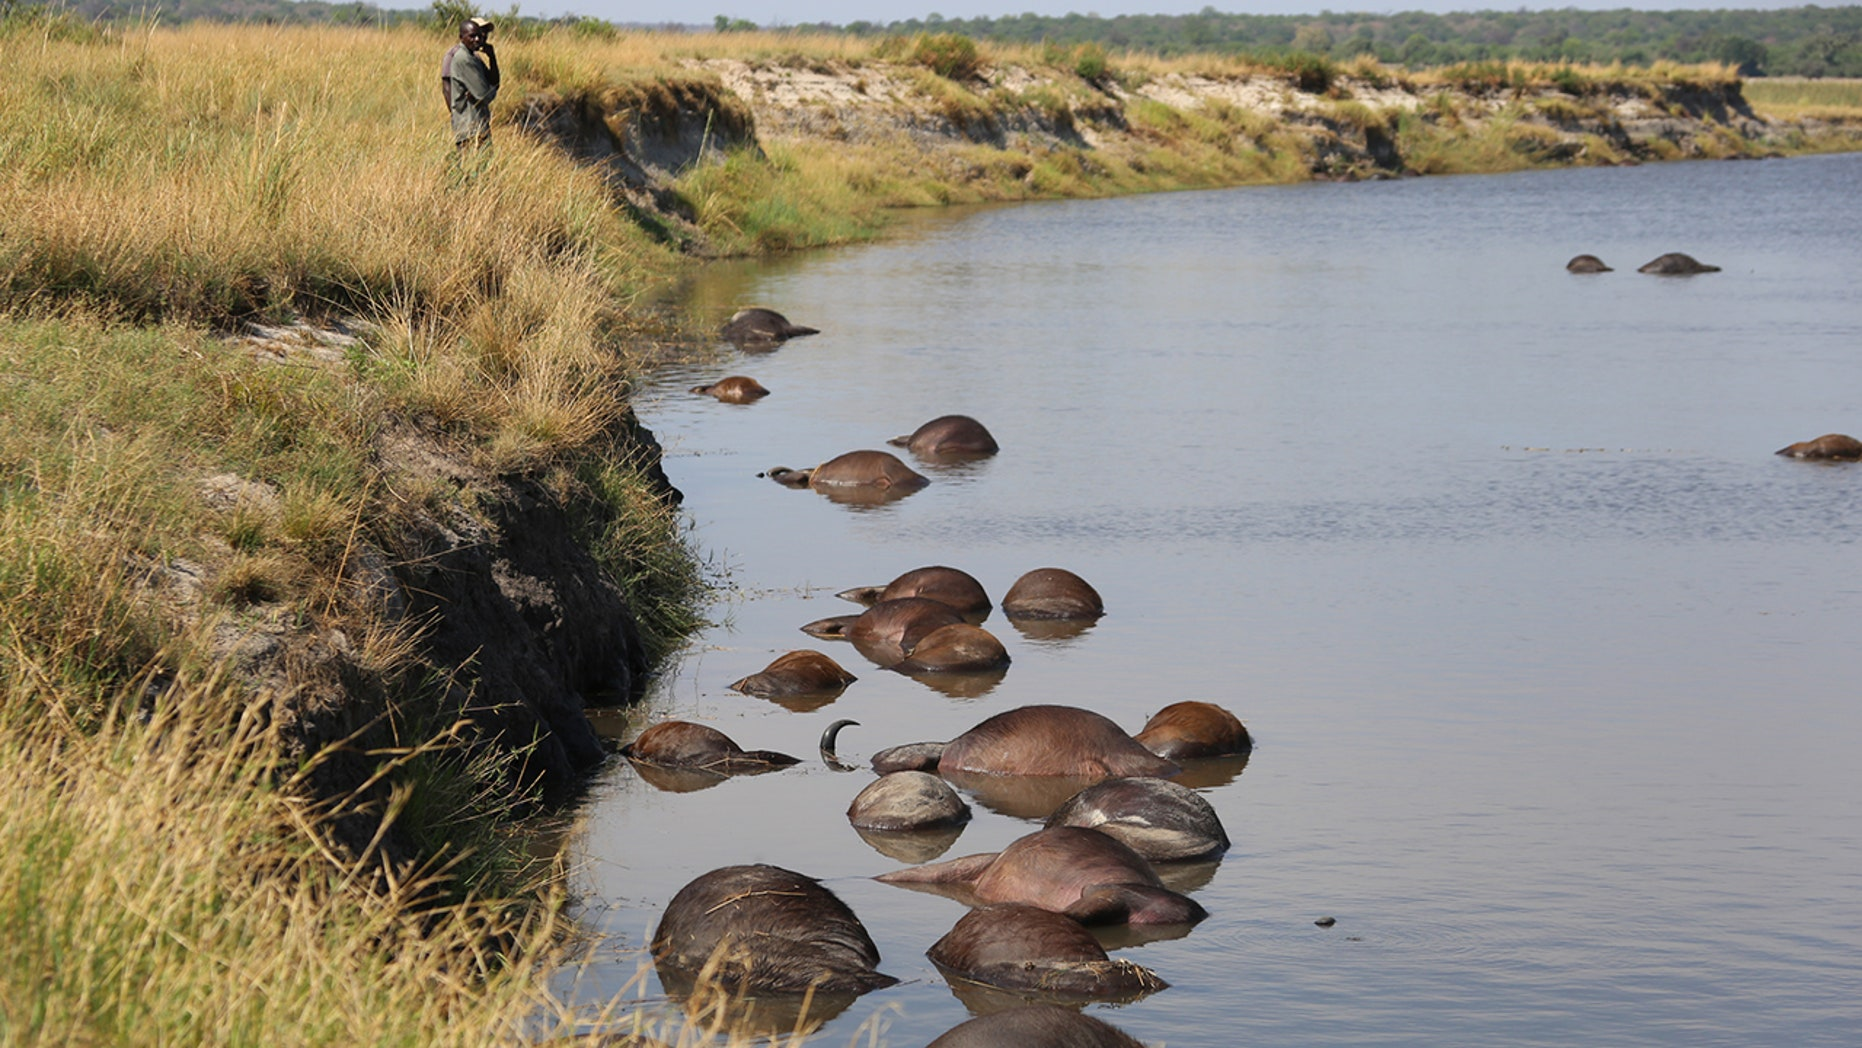 Hundreds of buffalo drowned in the Chobe river after being chased by a pride of lions. (Serondela Lodge)